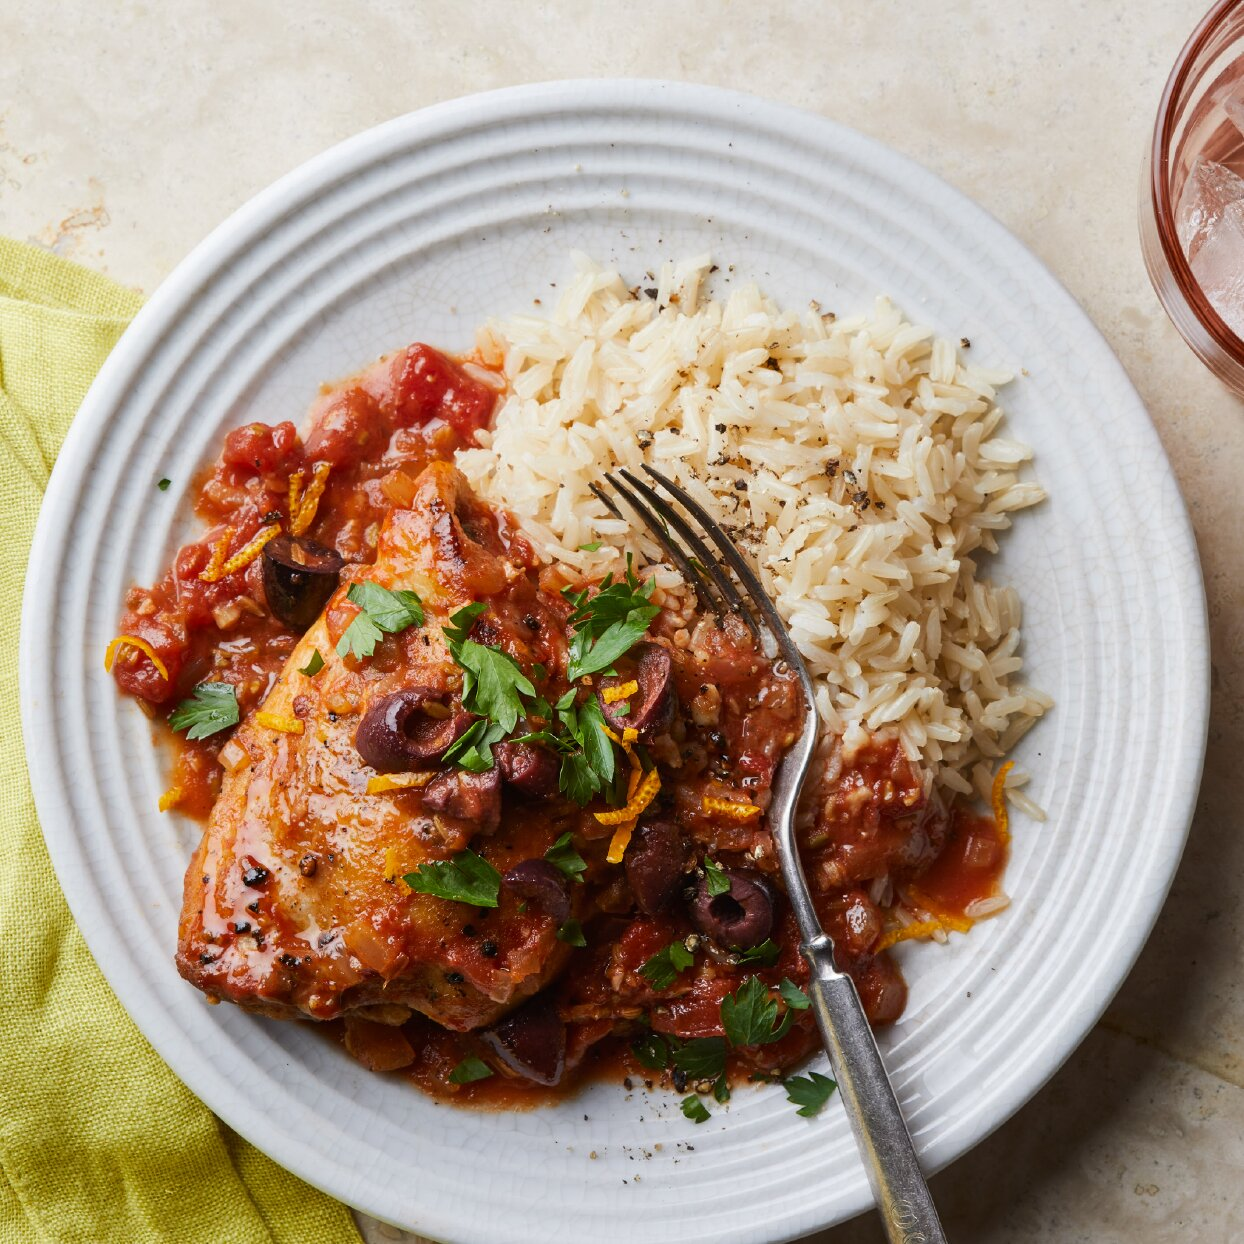 Braised Chicken Thighs with Fennel, Orange & Olives recipe